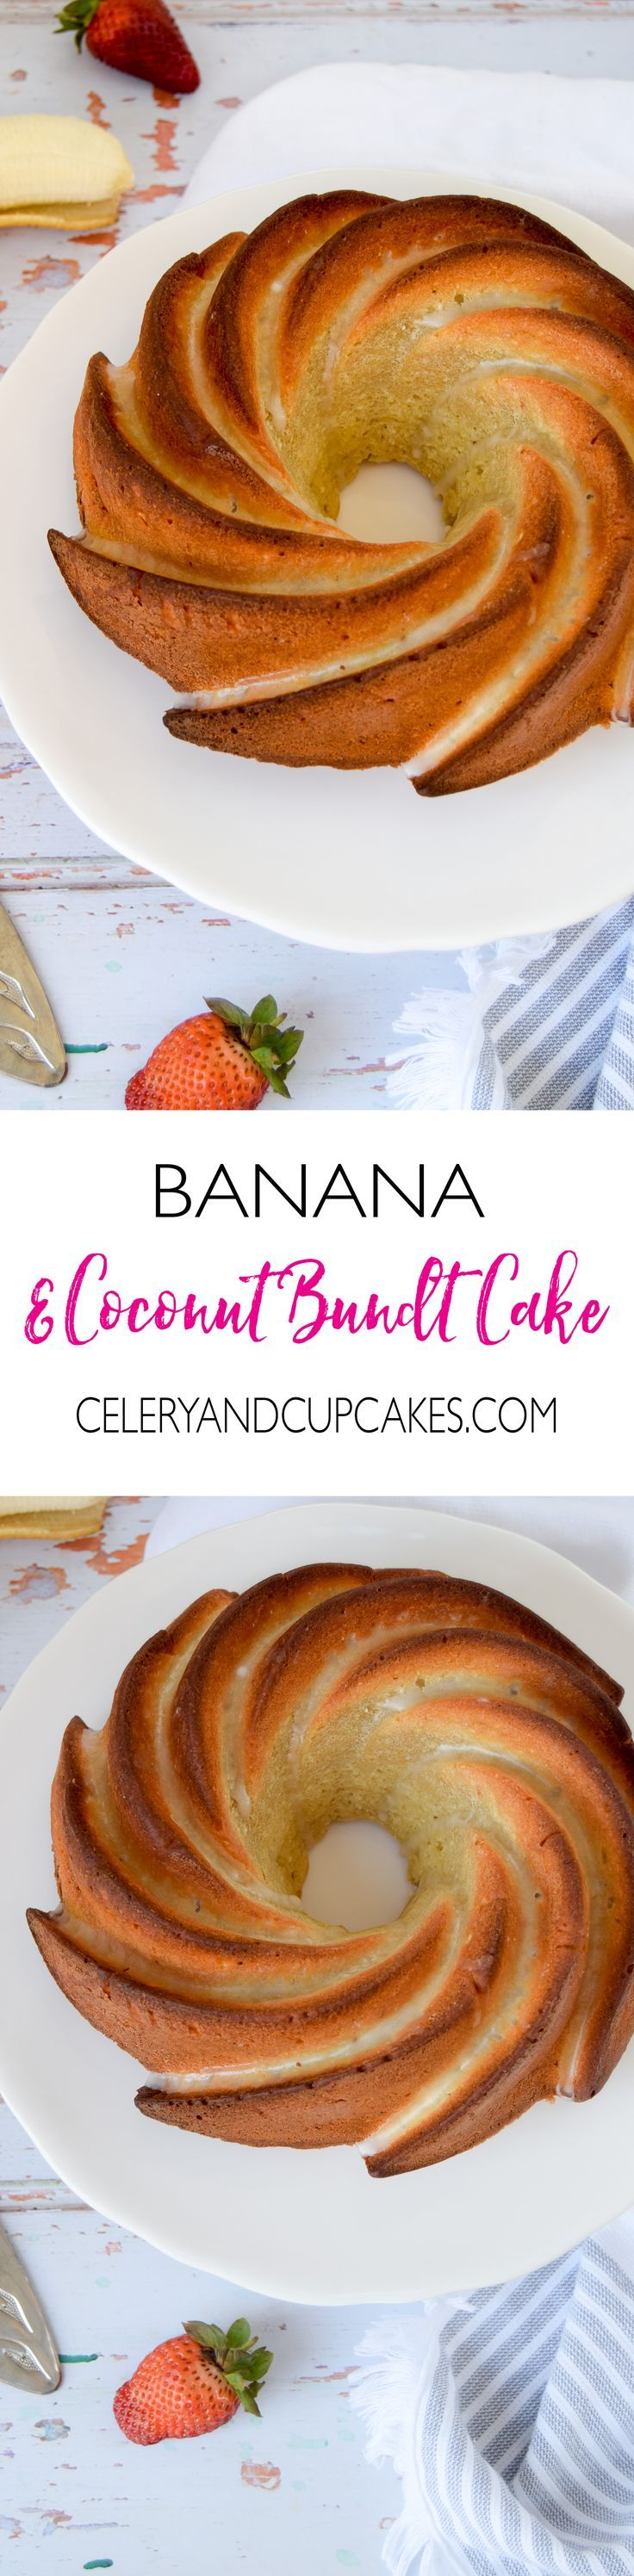 A deliciously fluffy and moist banana bundt cake that is spiked with lots of coconut, made using vanilla quark that is naturally low in fat and high in protein.